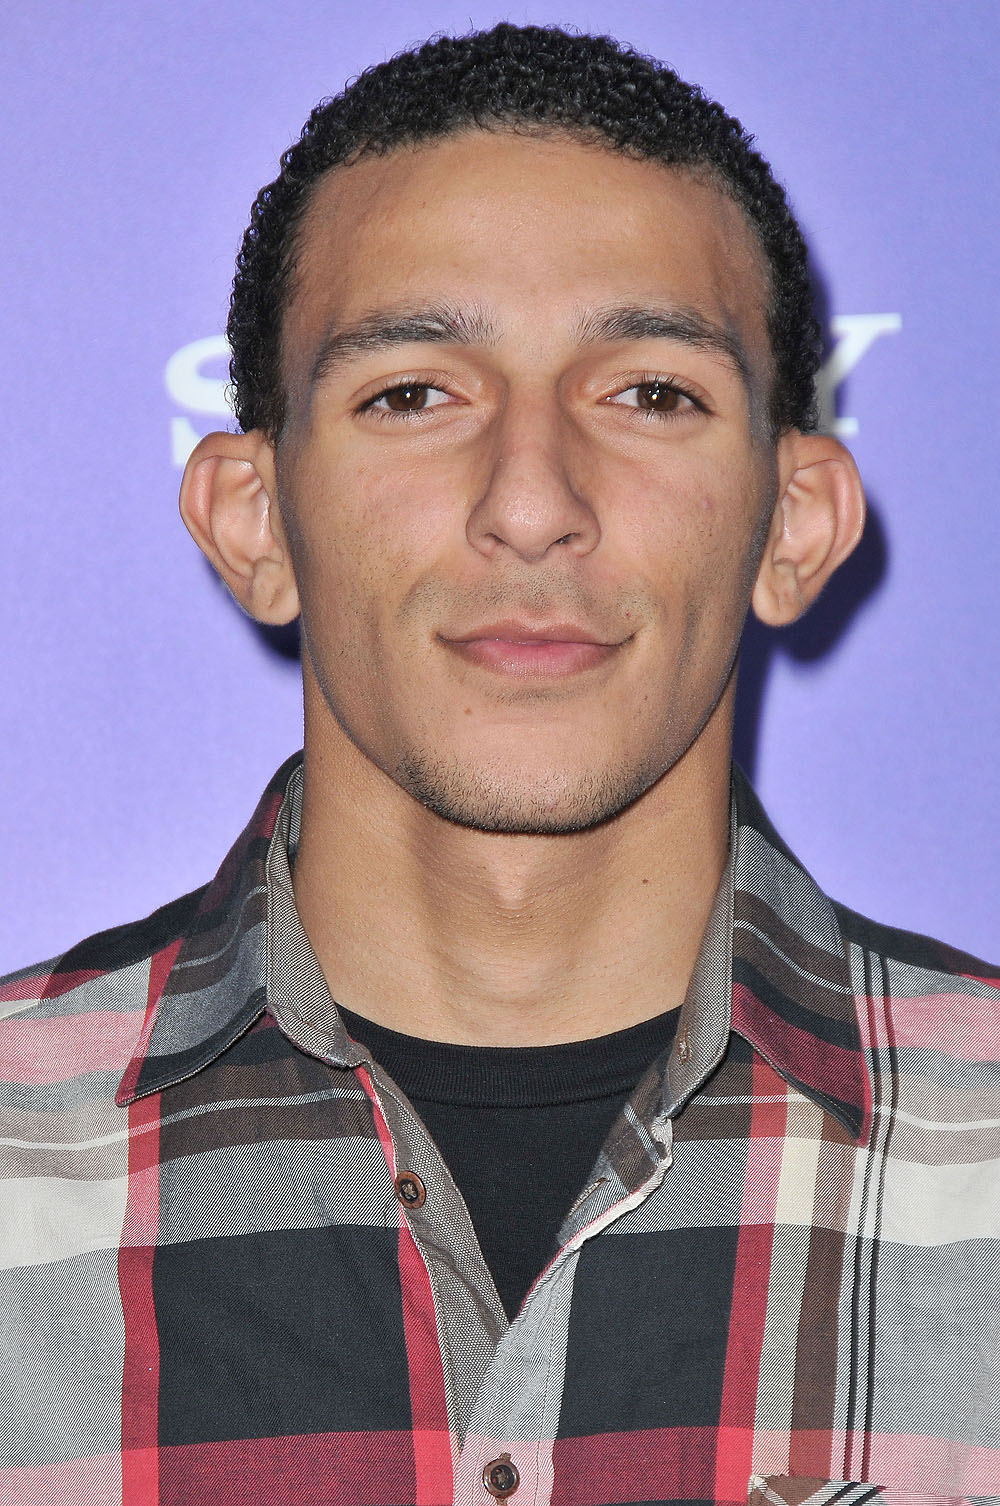 khleo thomas speakerpedia discover follow a world of compelling